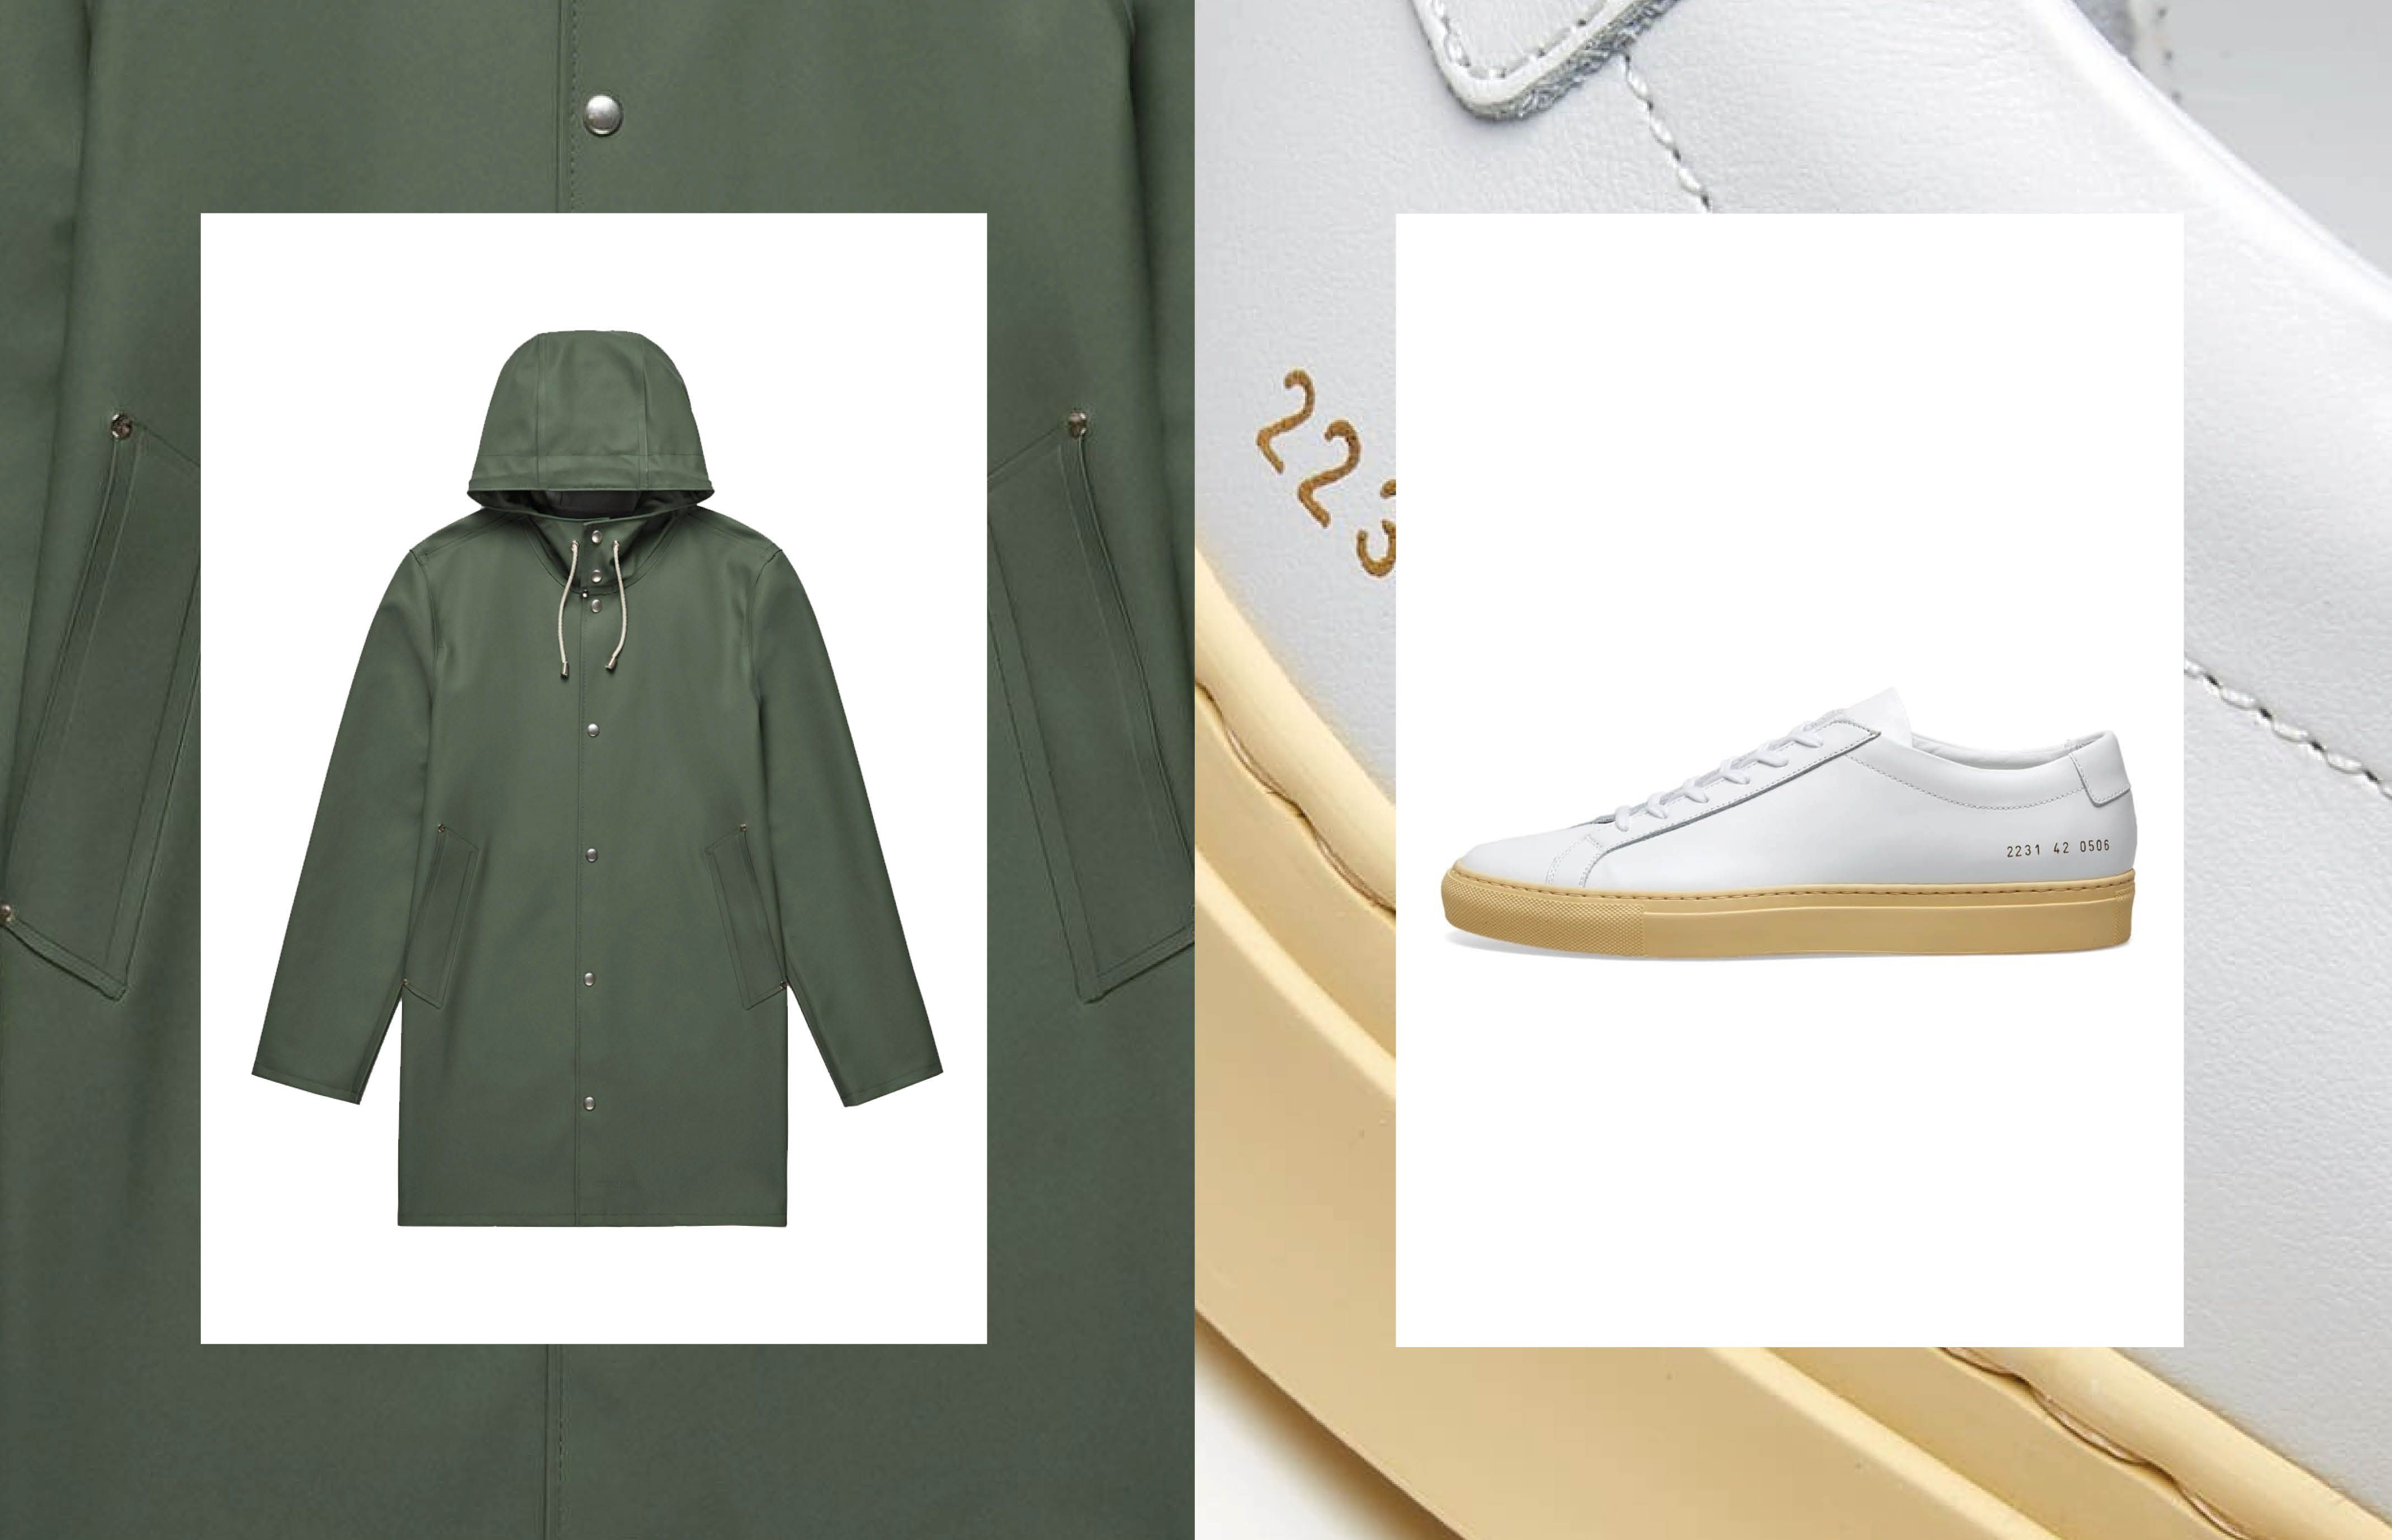 The new essential investment pieces